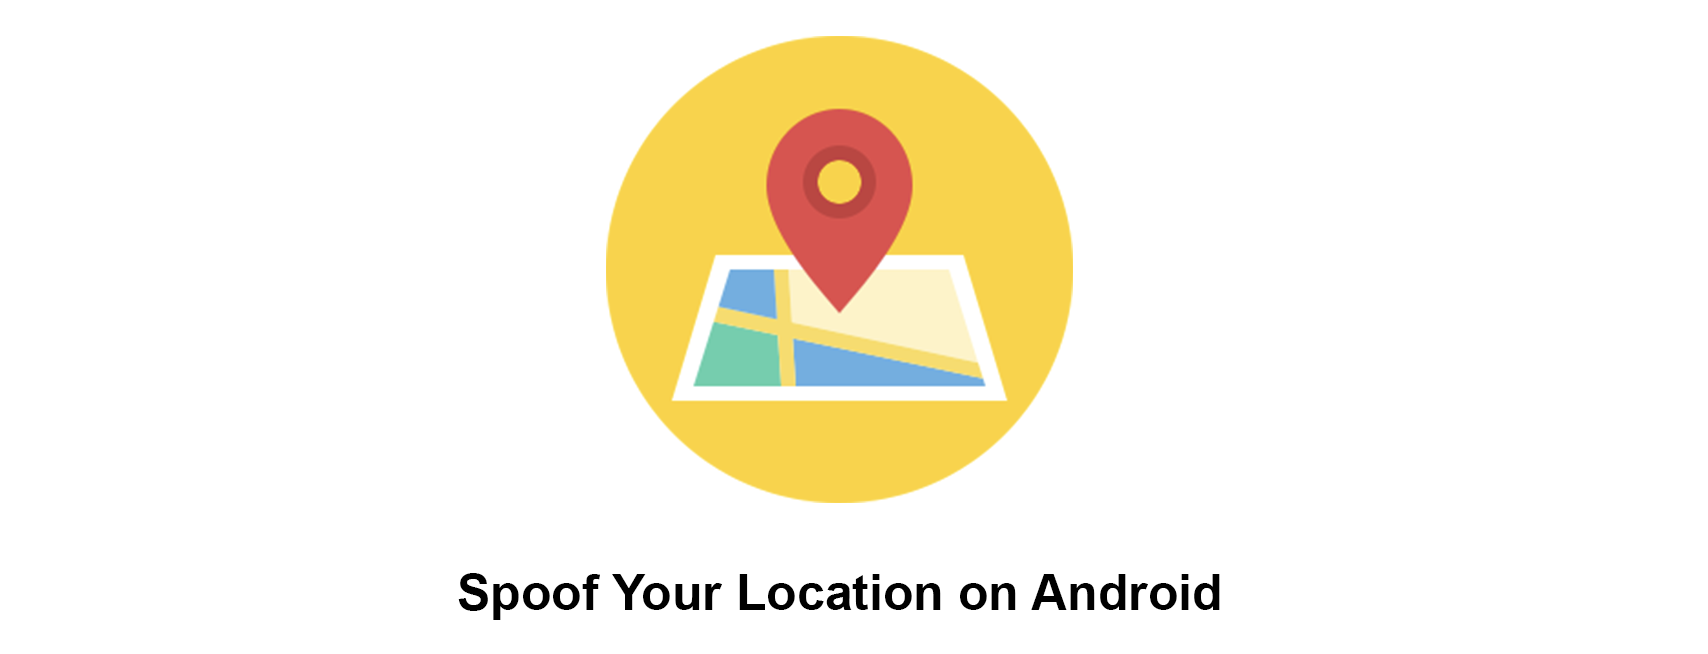 How to Spoof Your Location on Android Quickly Without a Root